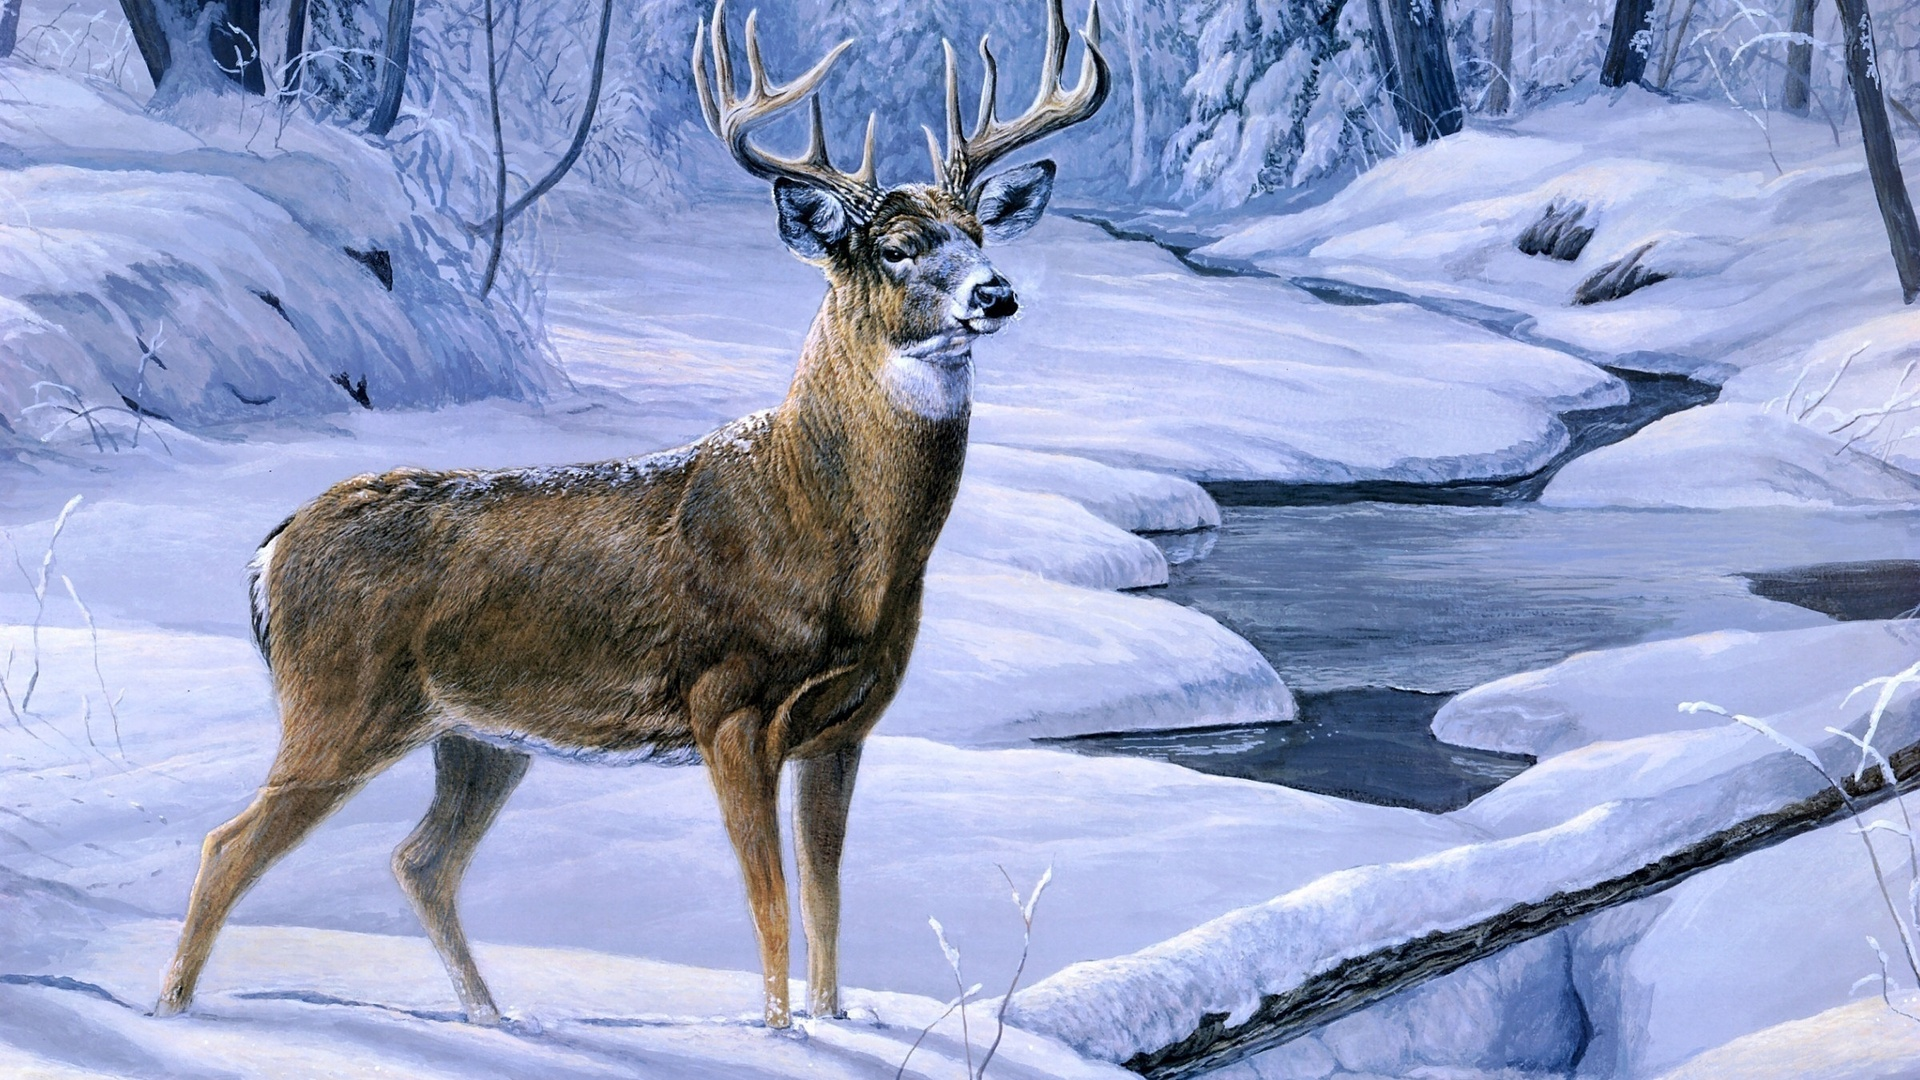 deer wallpapers deer hd wallpapers deer hd wallpapers deer hd 1920x1080